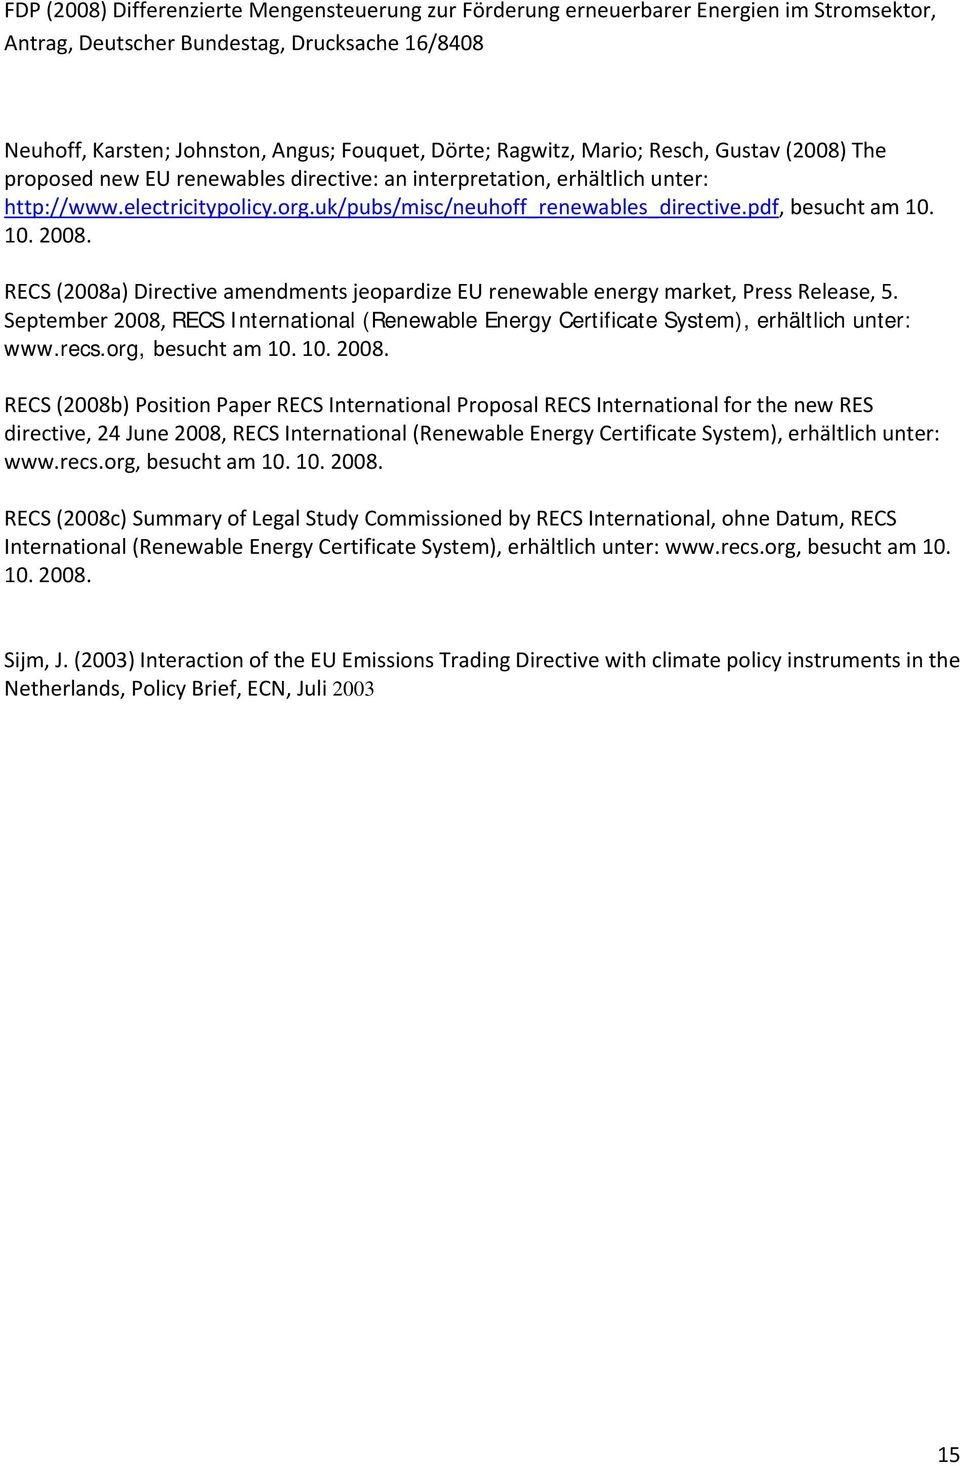 pdf, besucht am 10. 10. 2008. RECS (2008a) Directive amendments jeopardize EU renewable energy market, Press Release, 5.